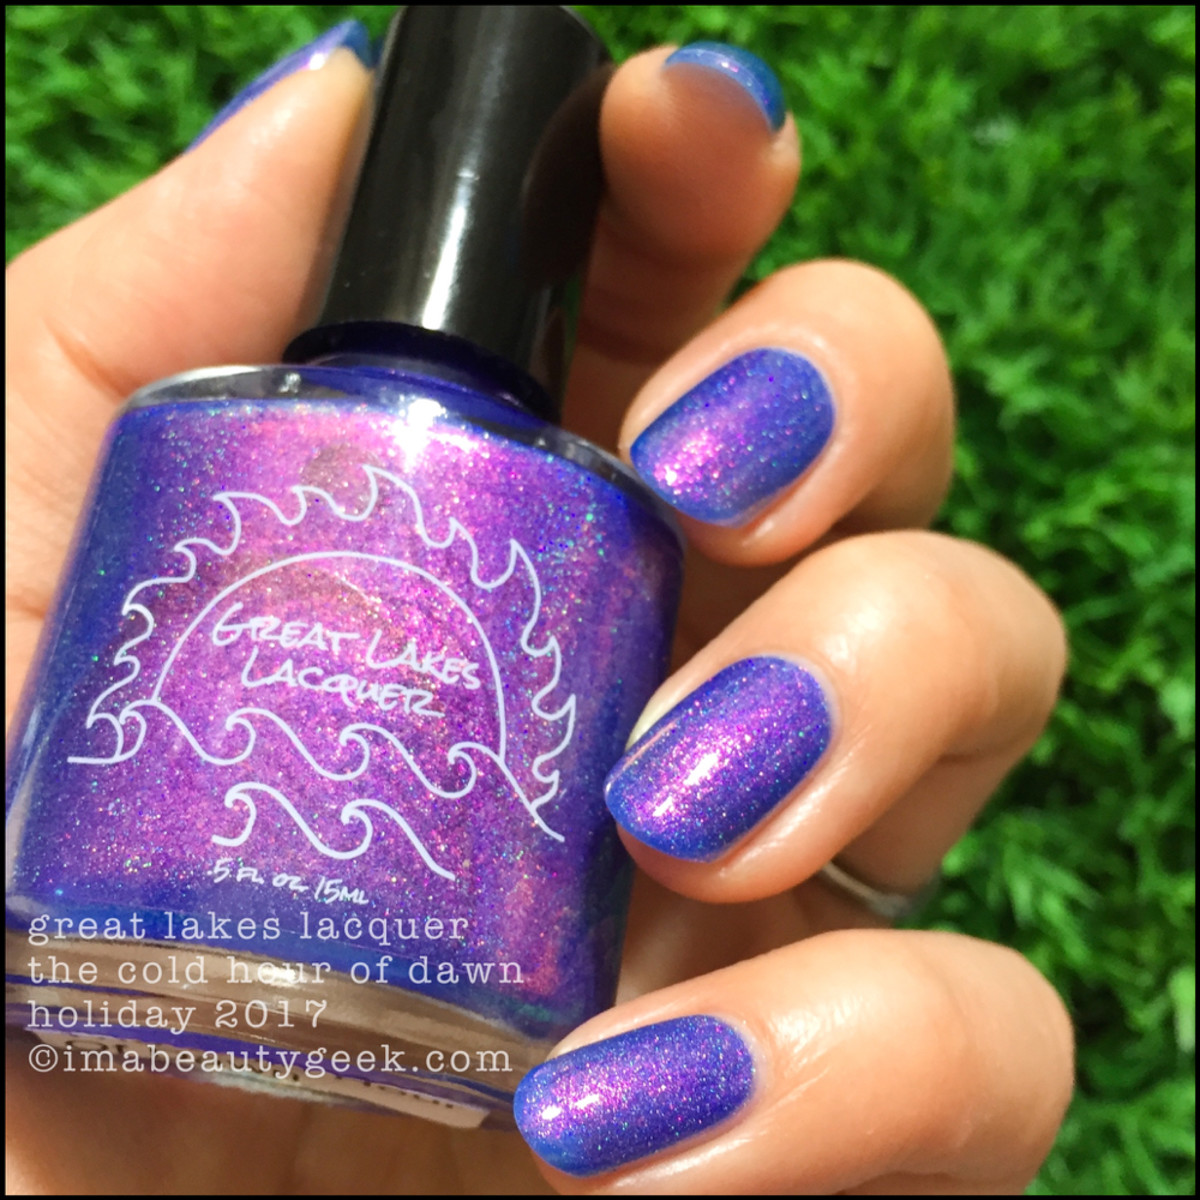 Great Lakes Lacquer The Cold Hour of Dawn 3 _ Great Lakes Lacquer Holiday 2017